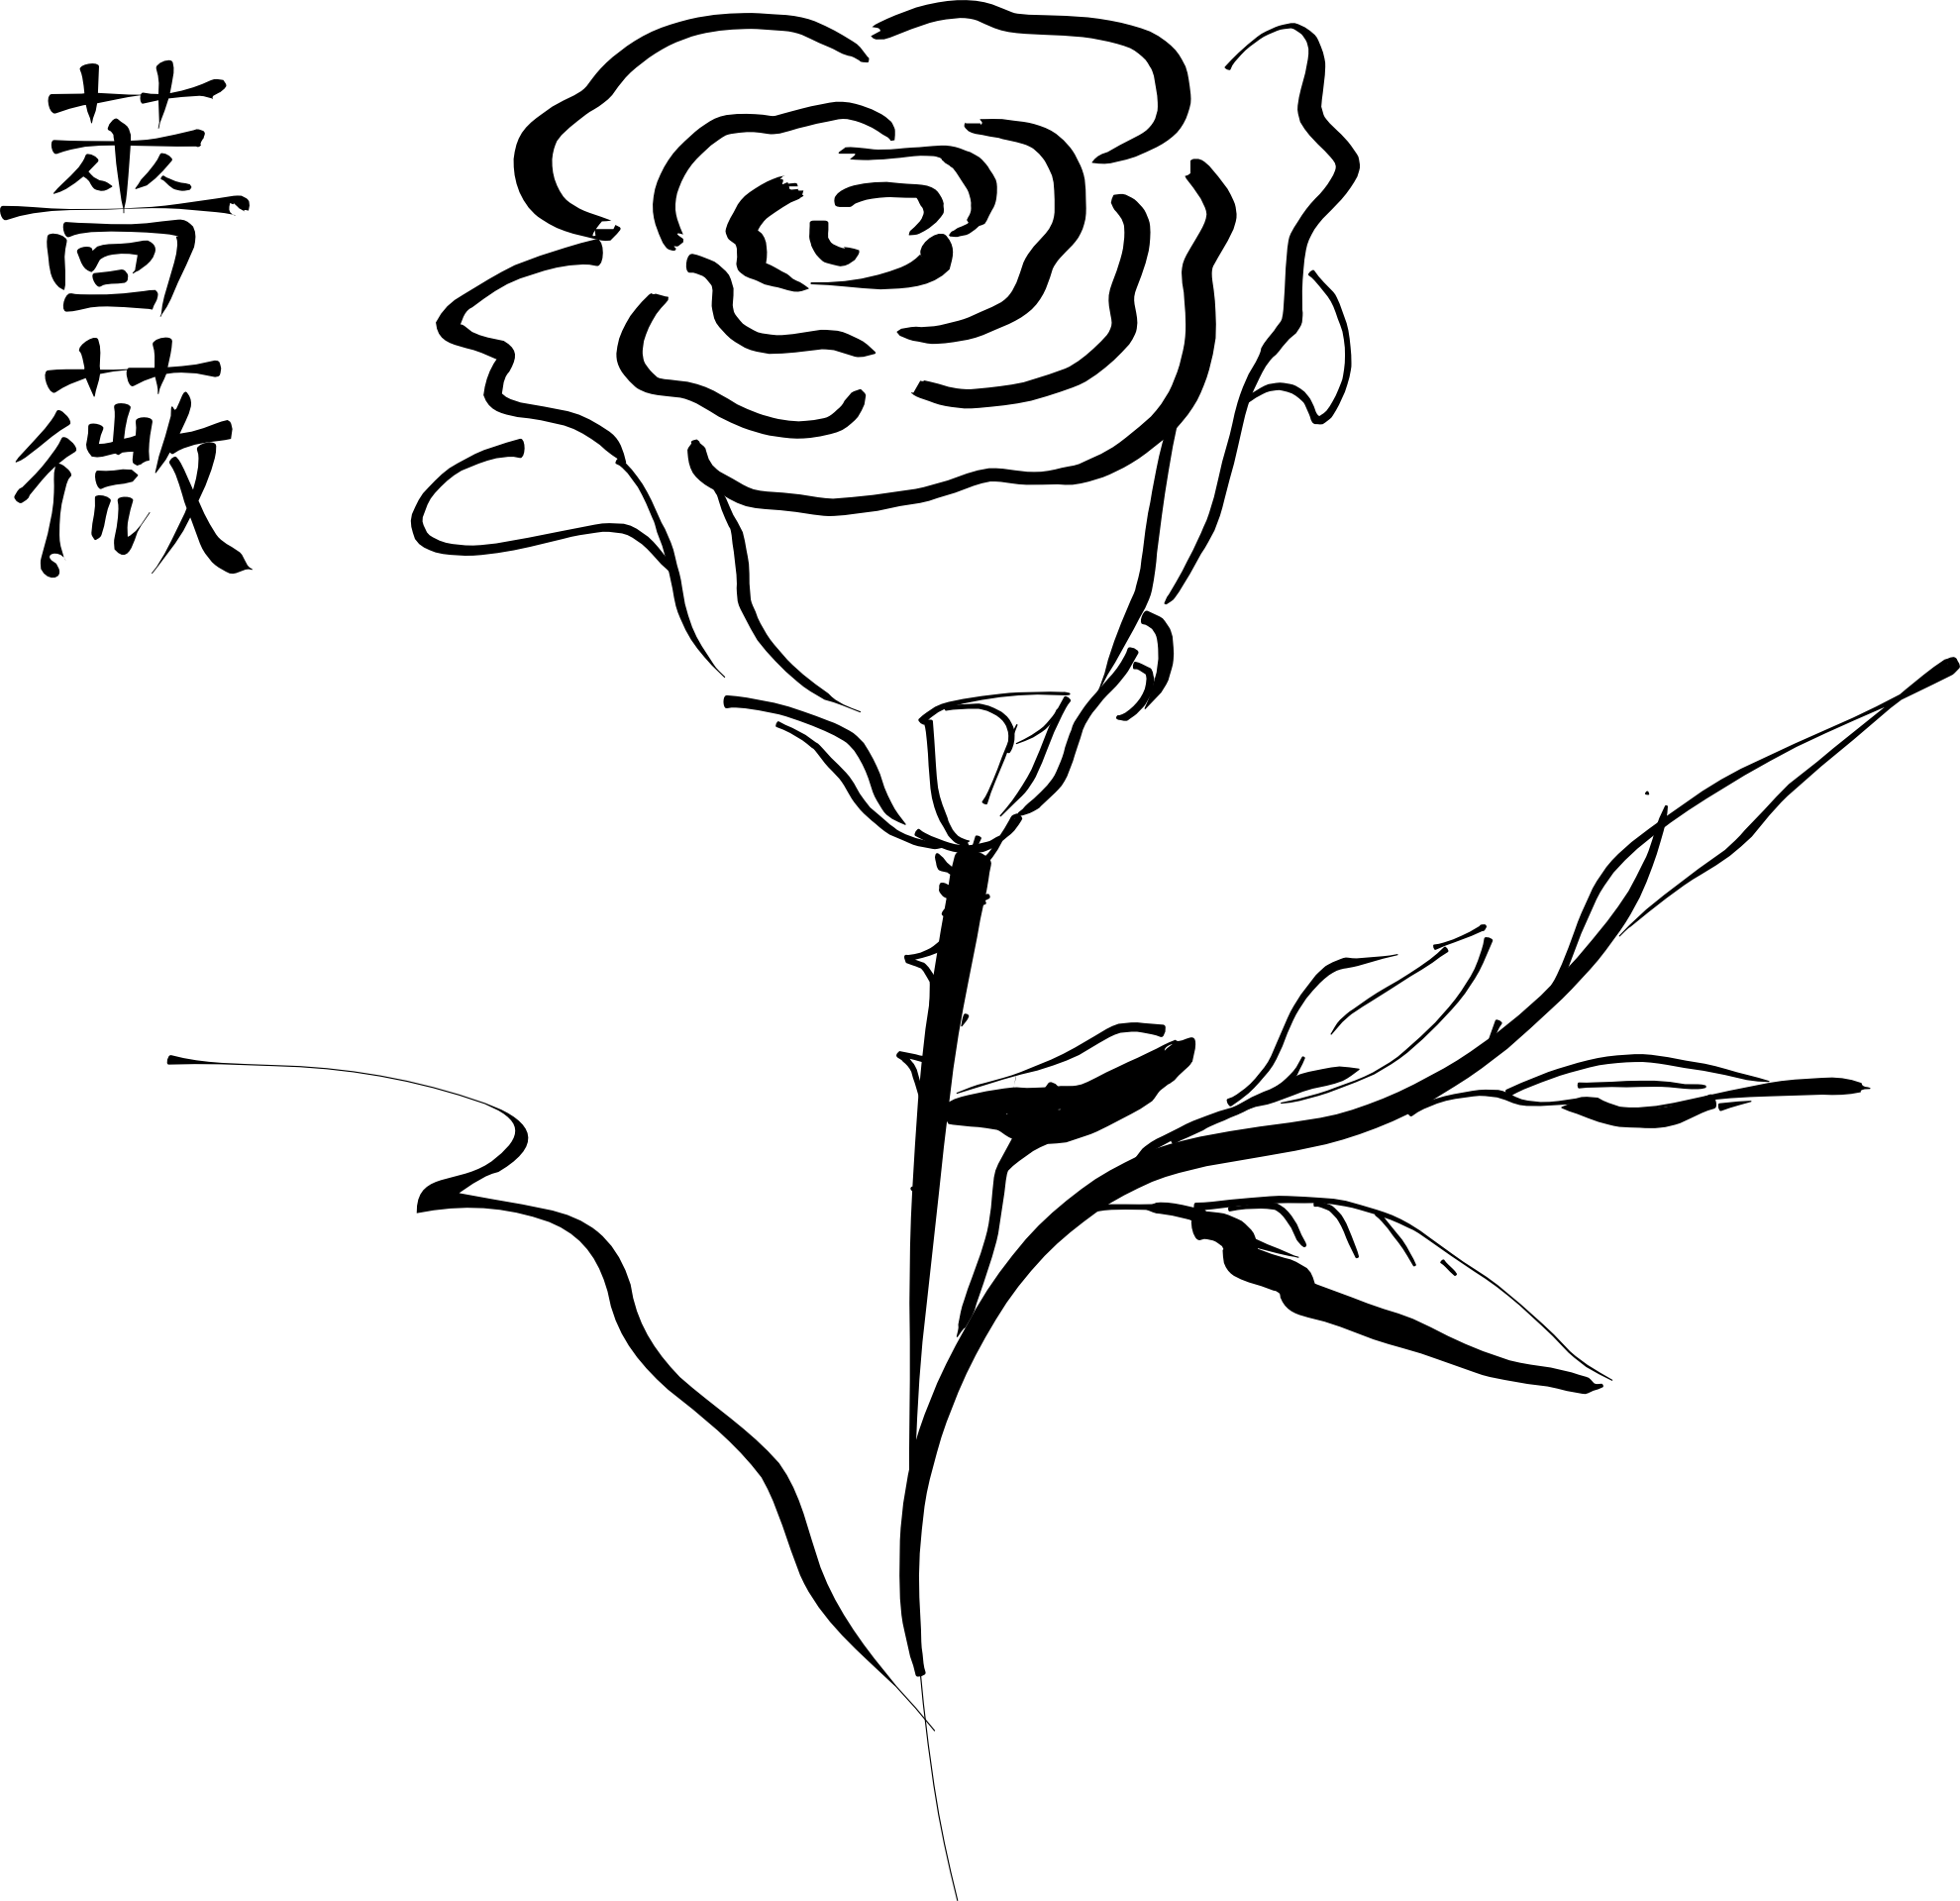 White clipart roseblack Black Art And White Images